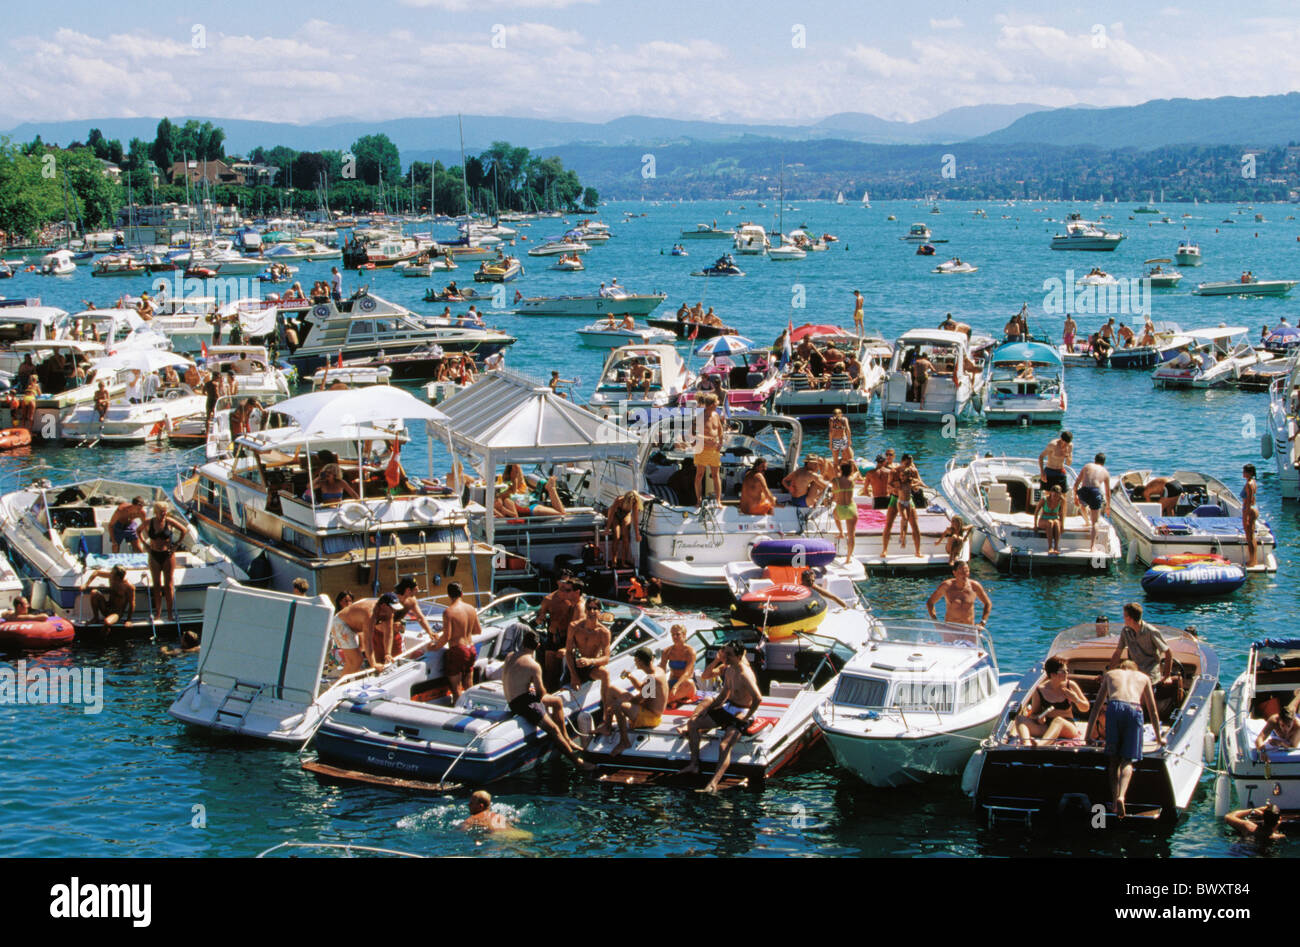 1999 boats lives people no model release party Switzerland Europe lake sea Streetparade party fête town - Stock Image